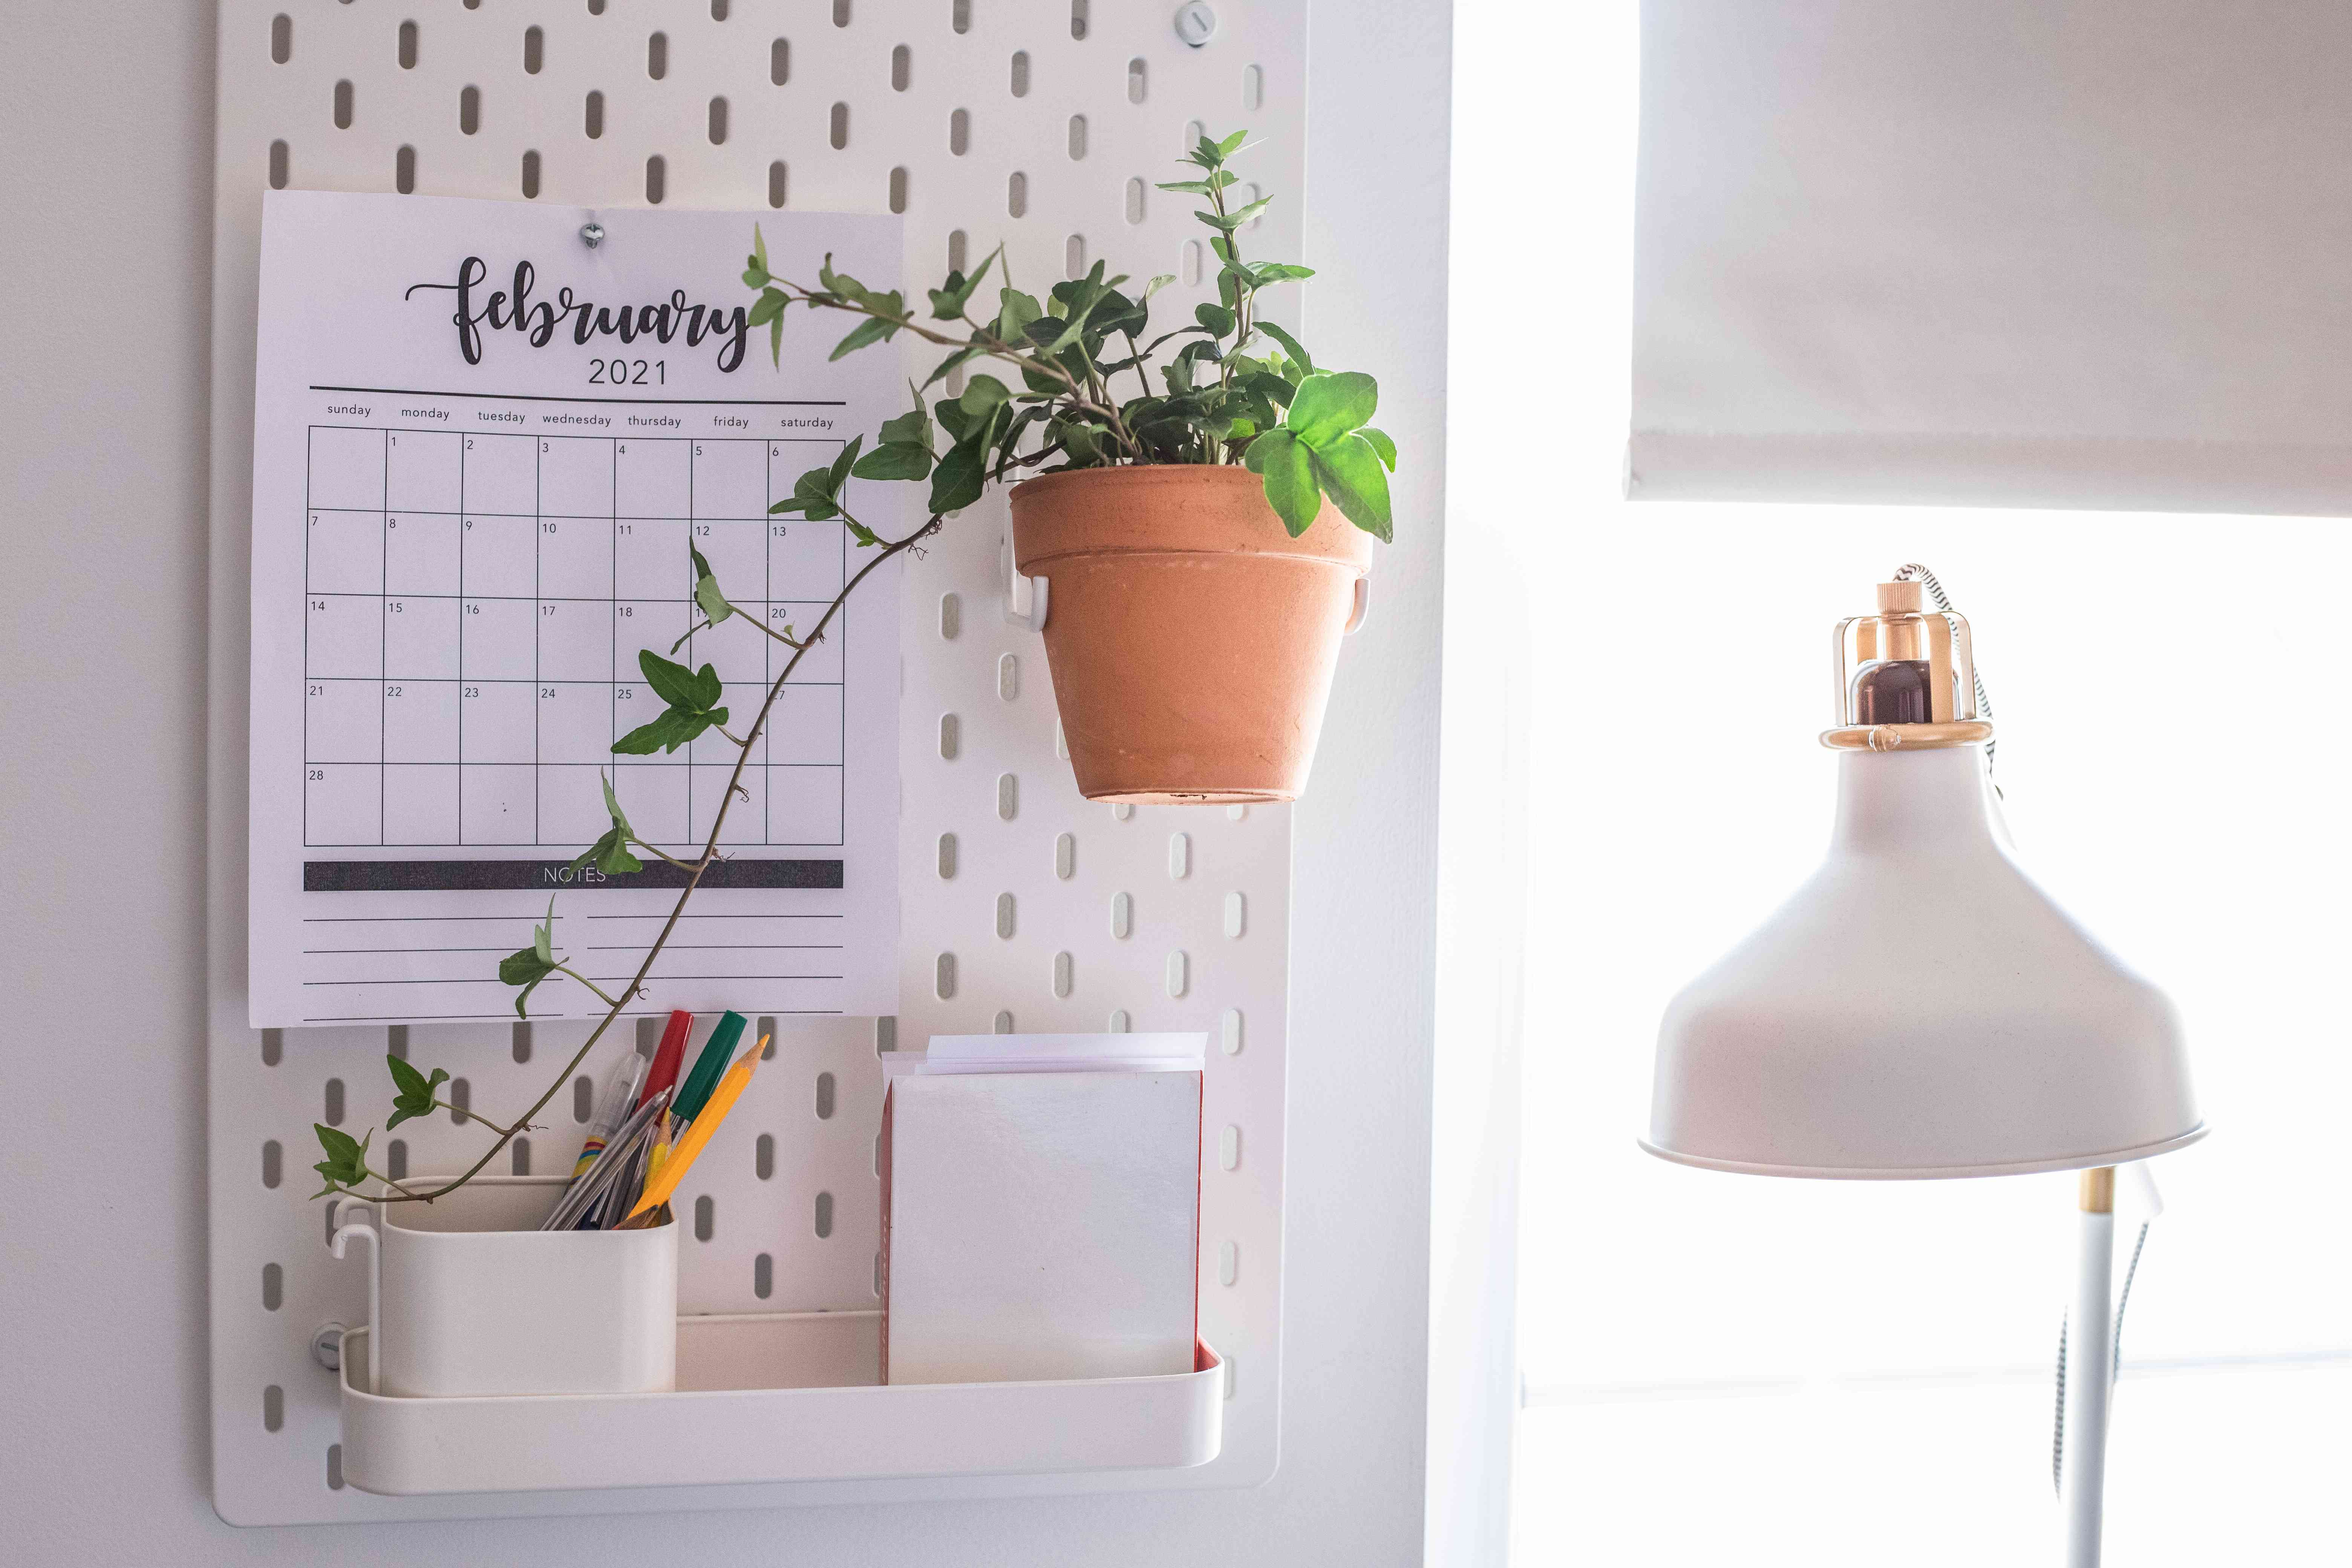 english ivy plant with trailing leaves in all-white office setting